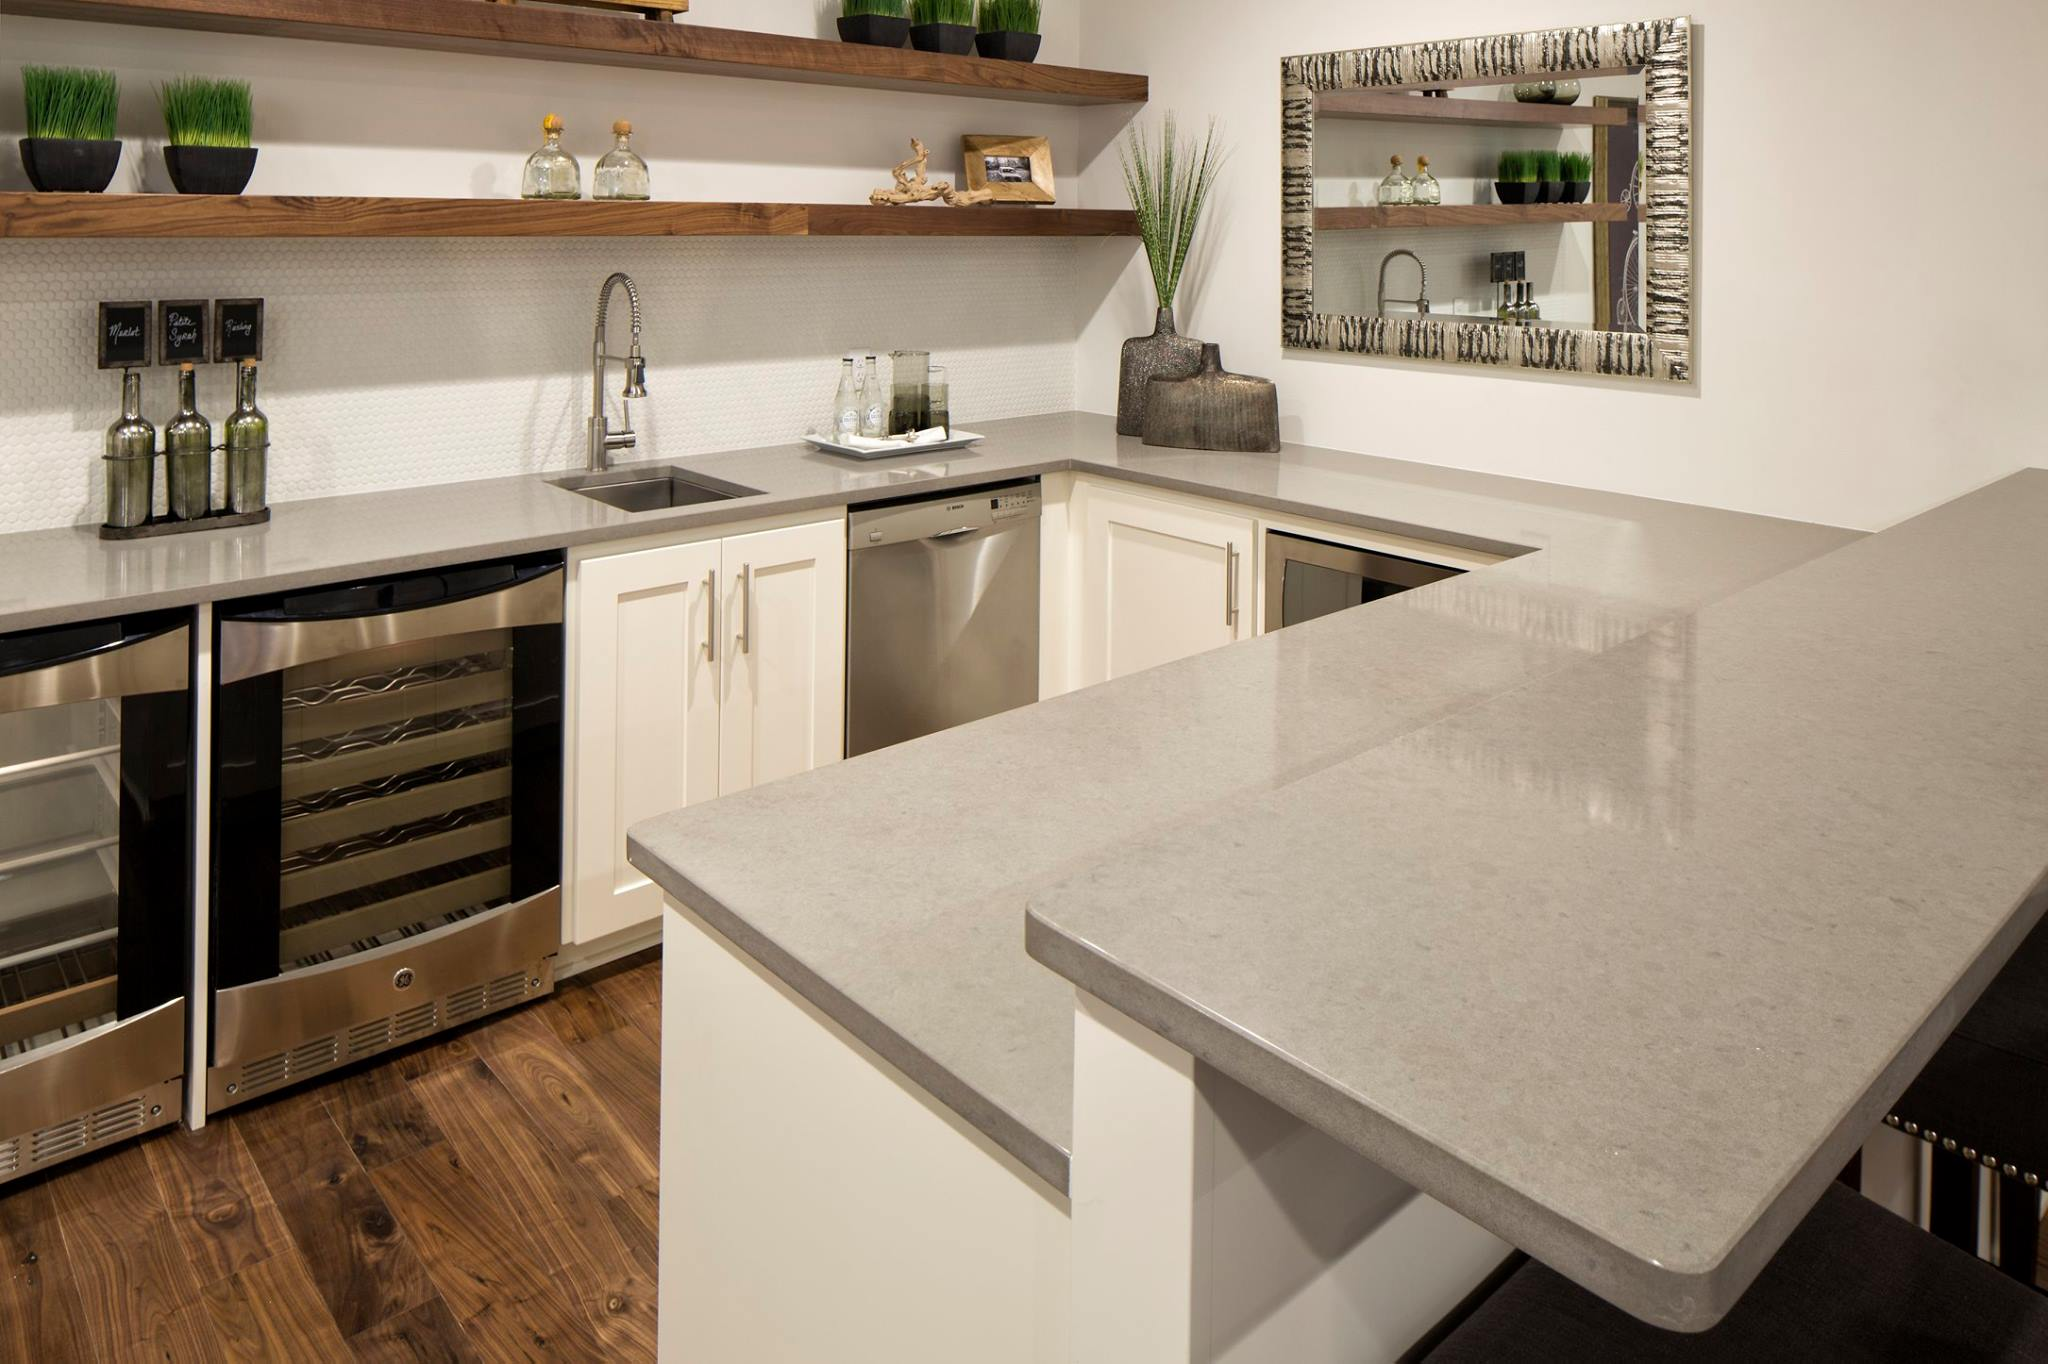 Quartz Countertops Vs Granite Countertops Which Is Best Countertops Minneapolis